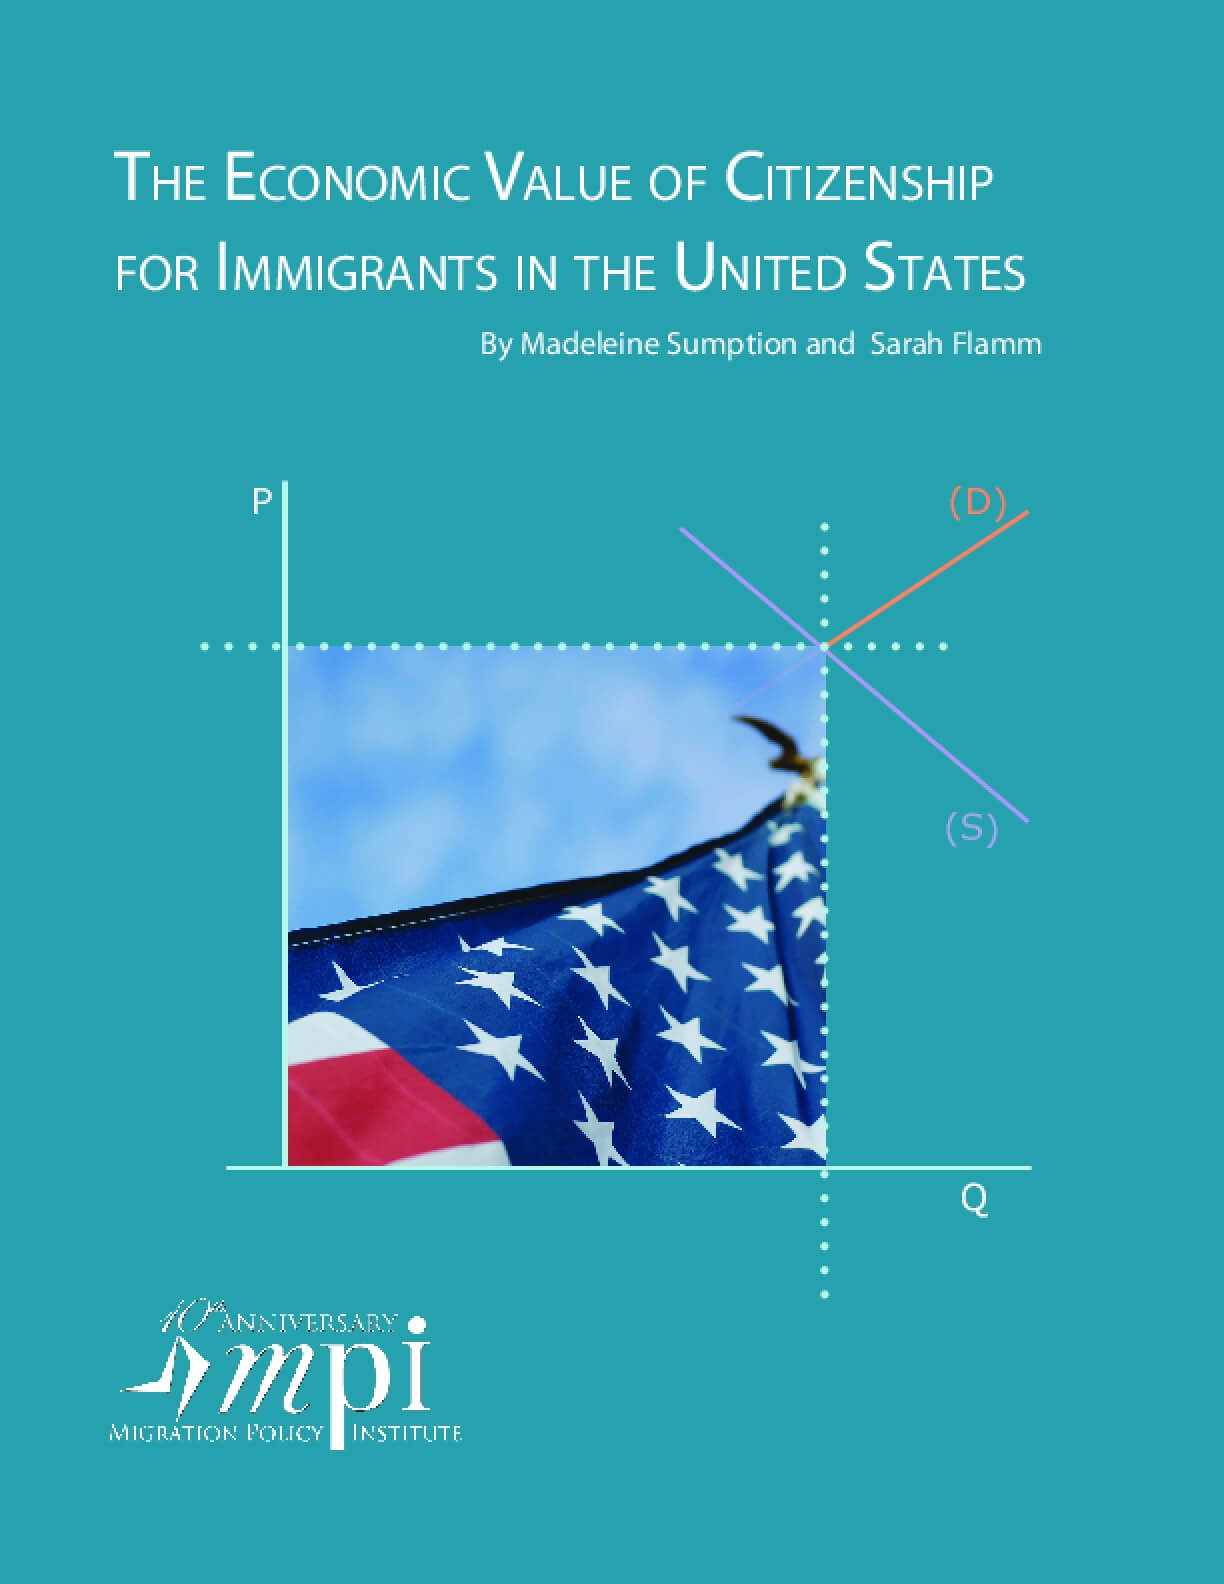 The Economic Value of Citizenship for Immigrants in the United States